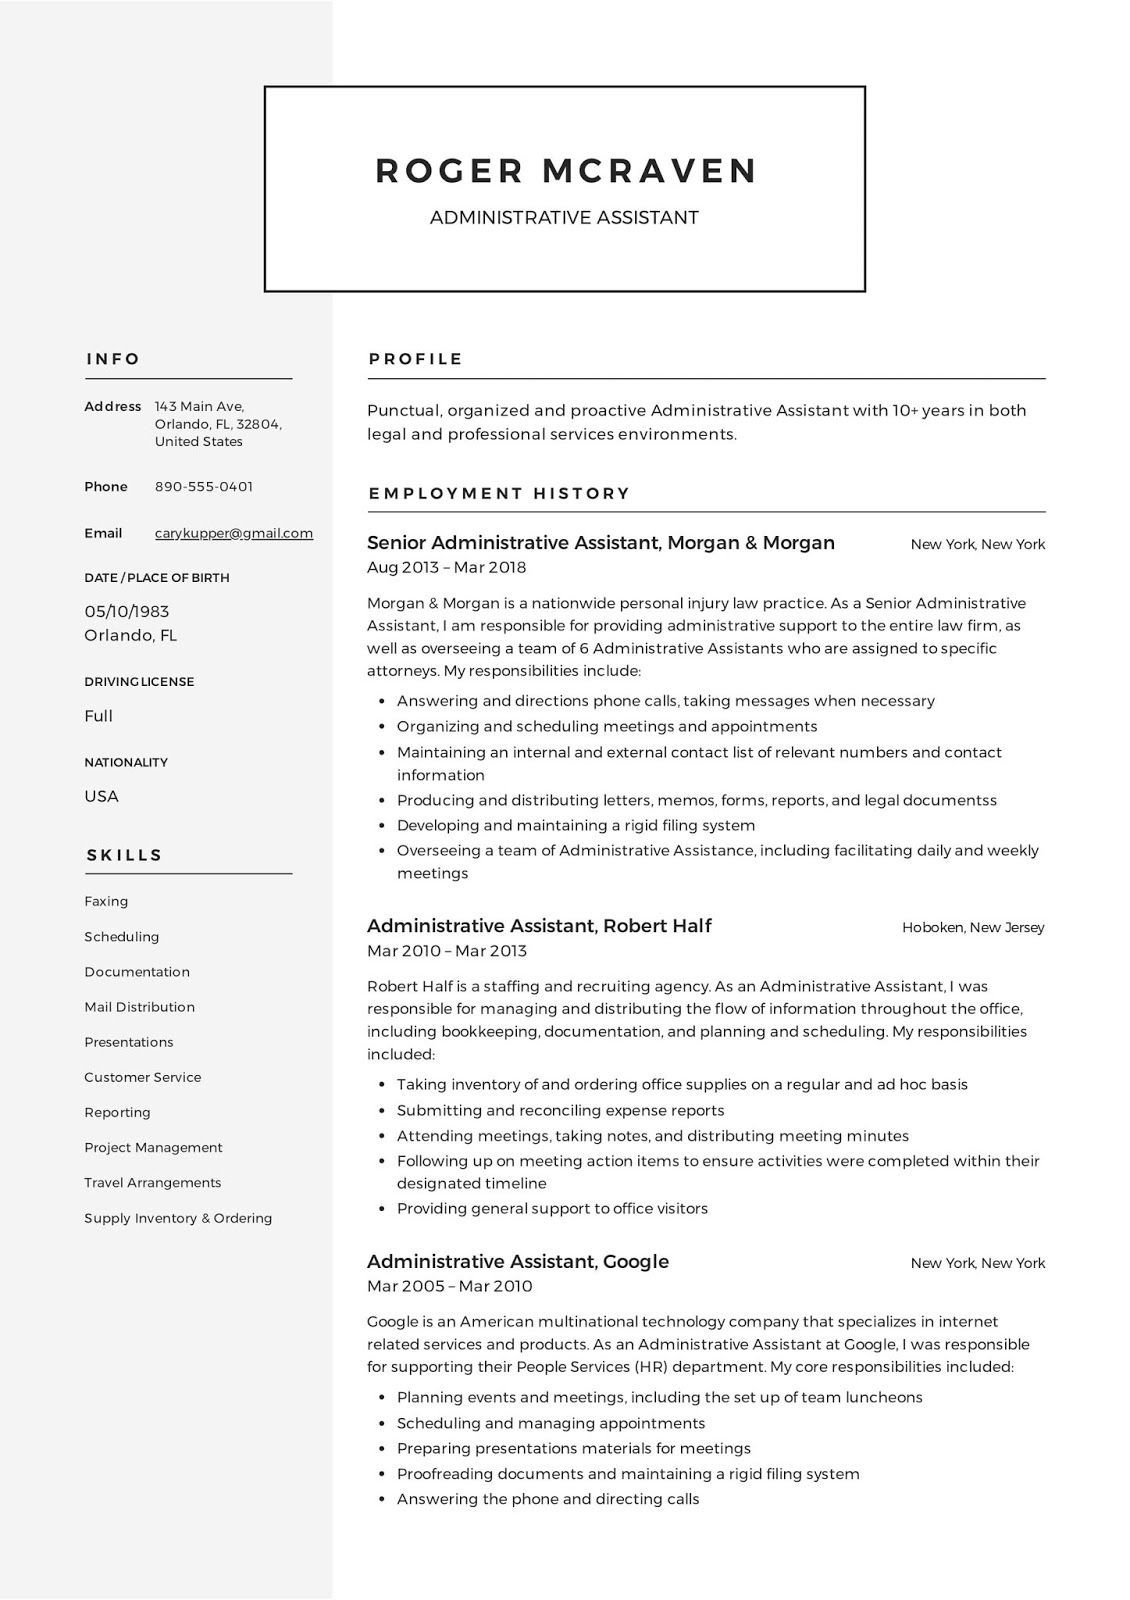 Administrative Resume Template 2019 Free Microsoft Word Resume